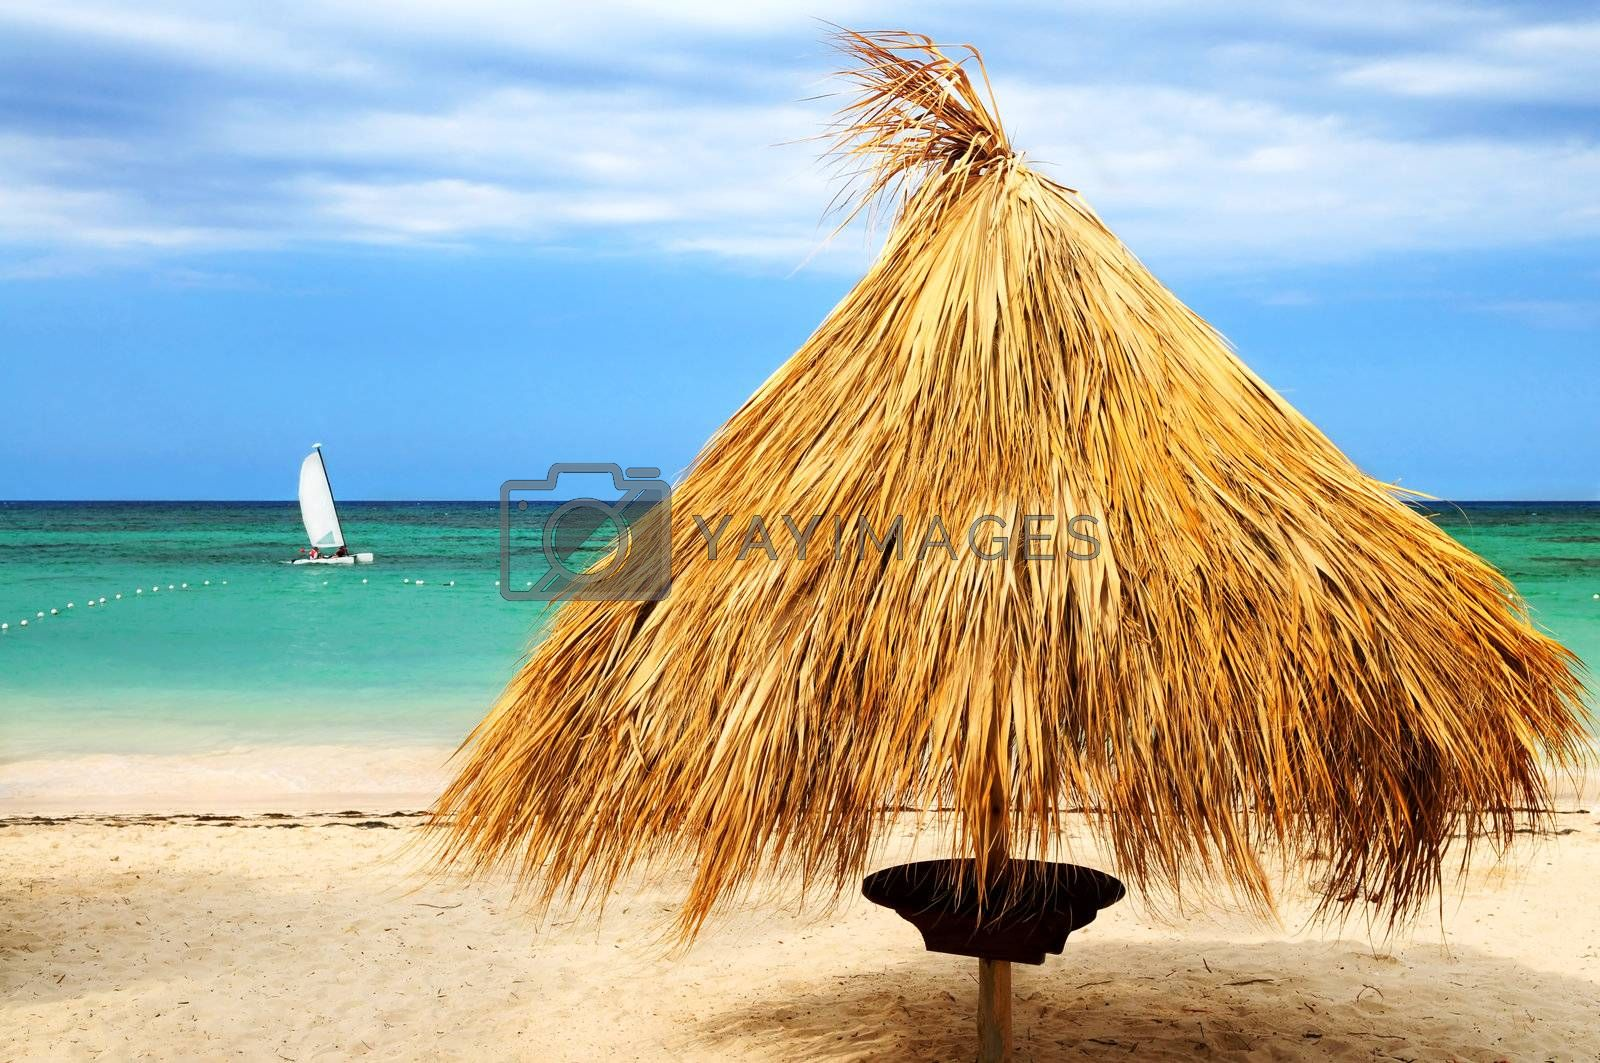 Tropical beach of a Caribbean island with palm branches shelter